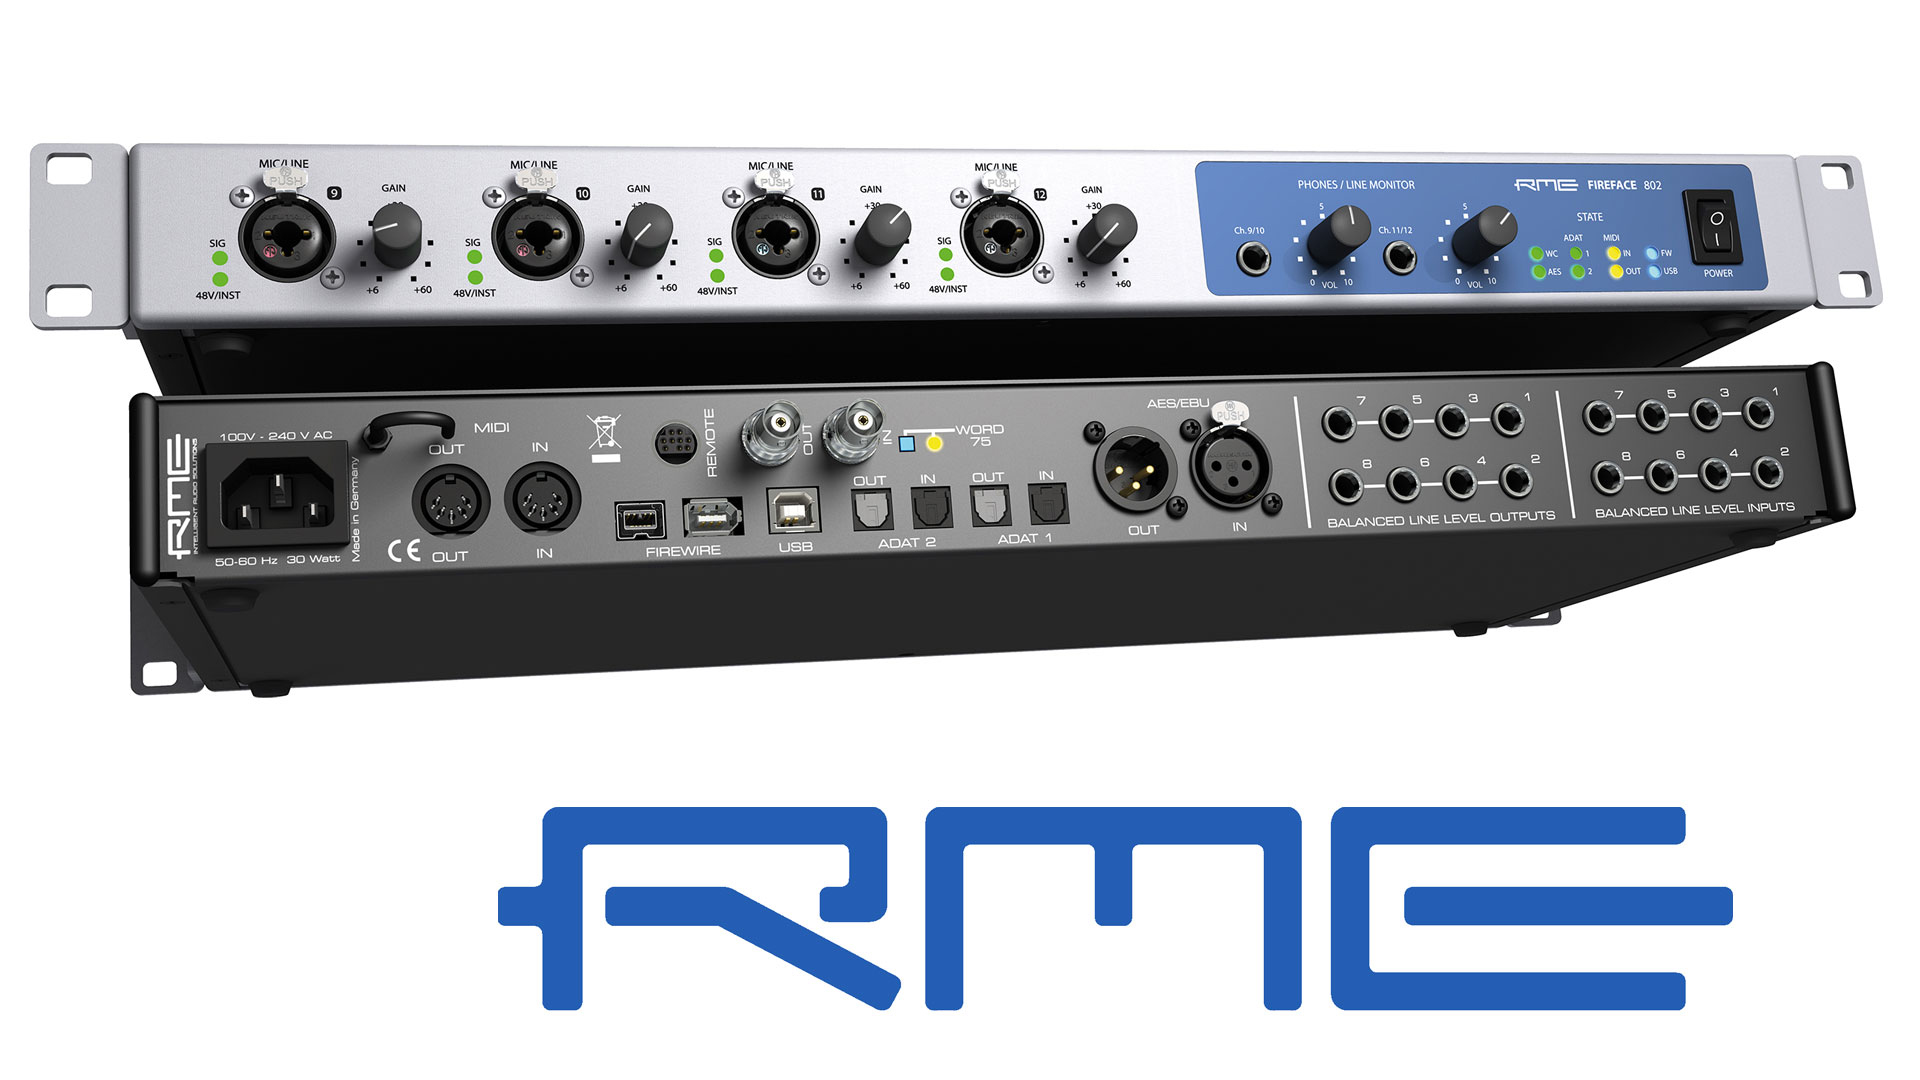 RME audiocards